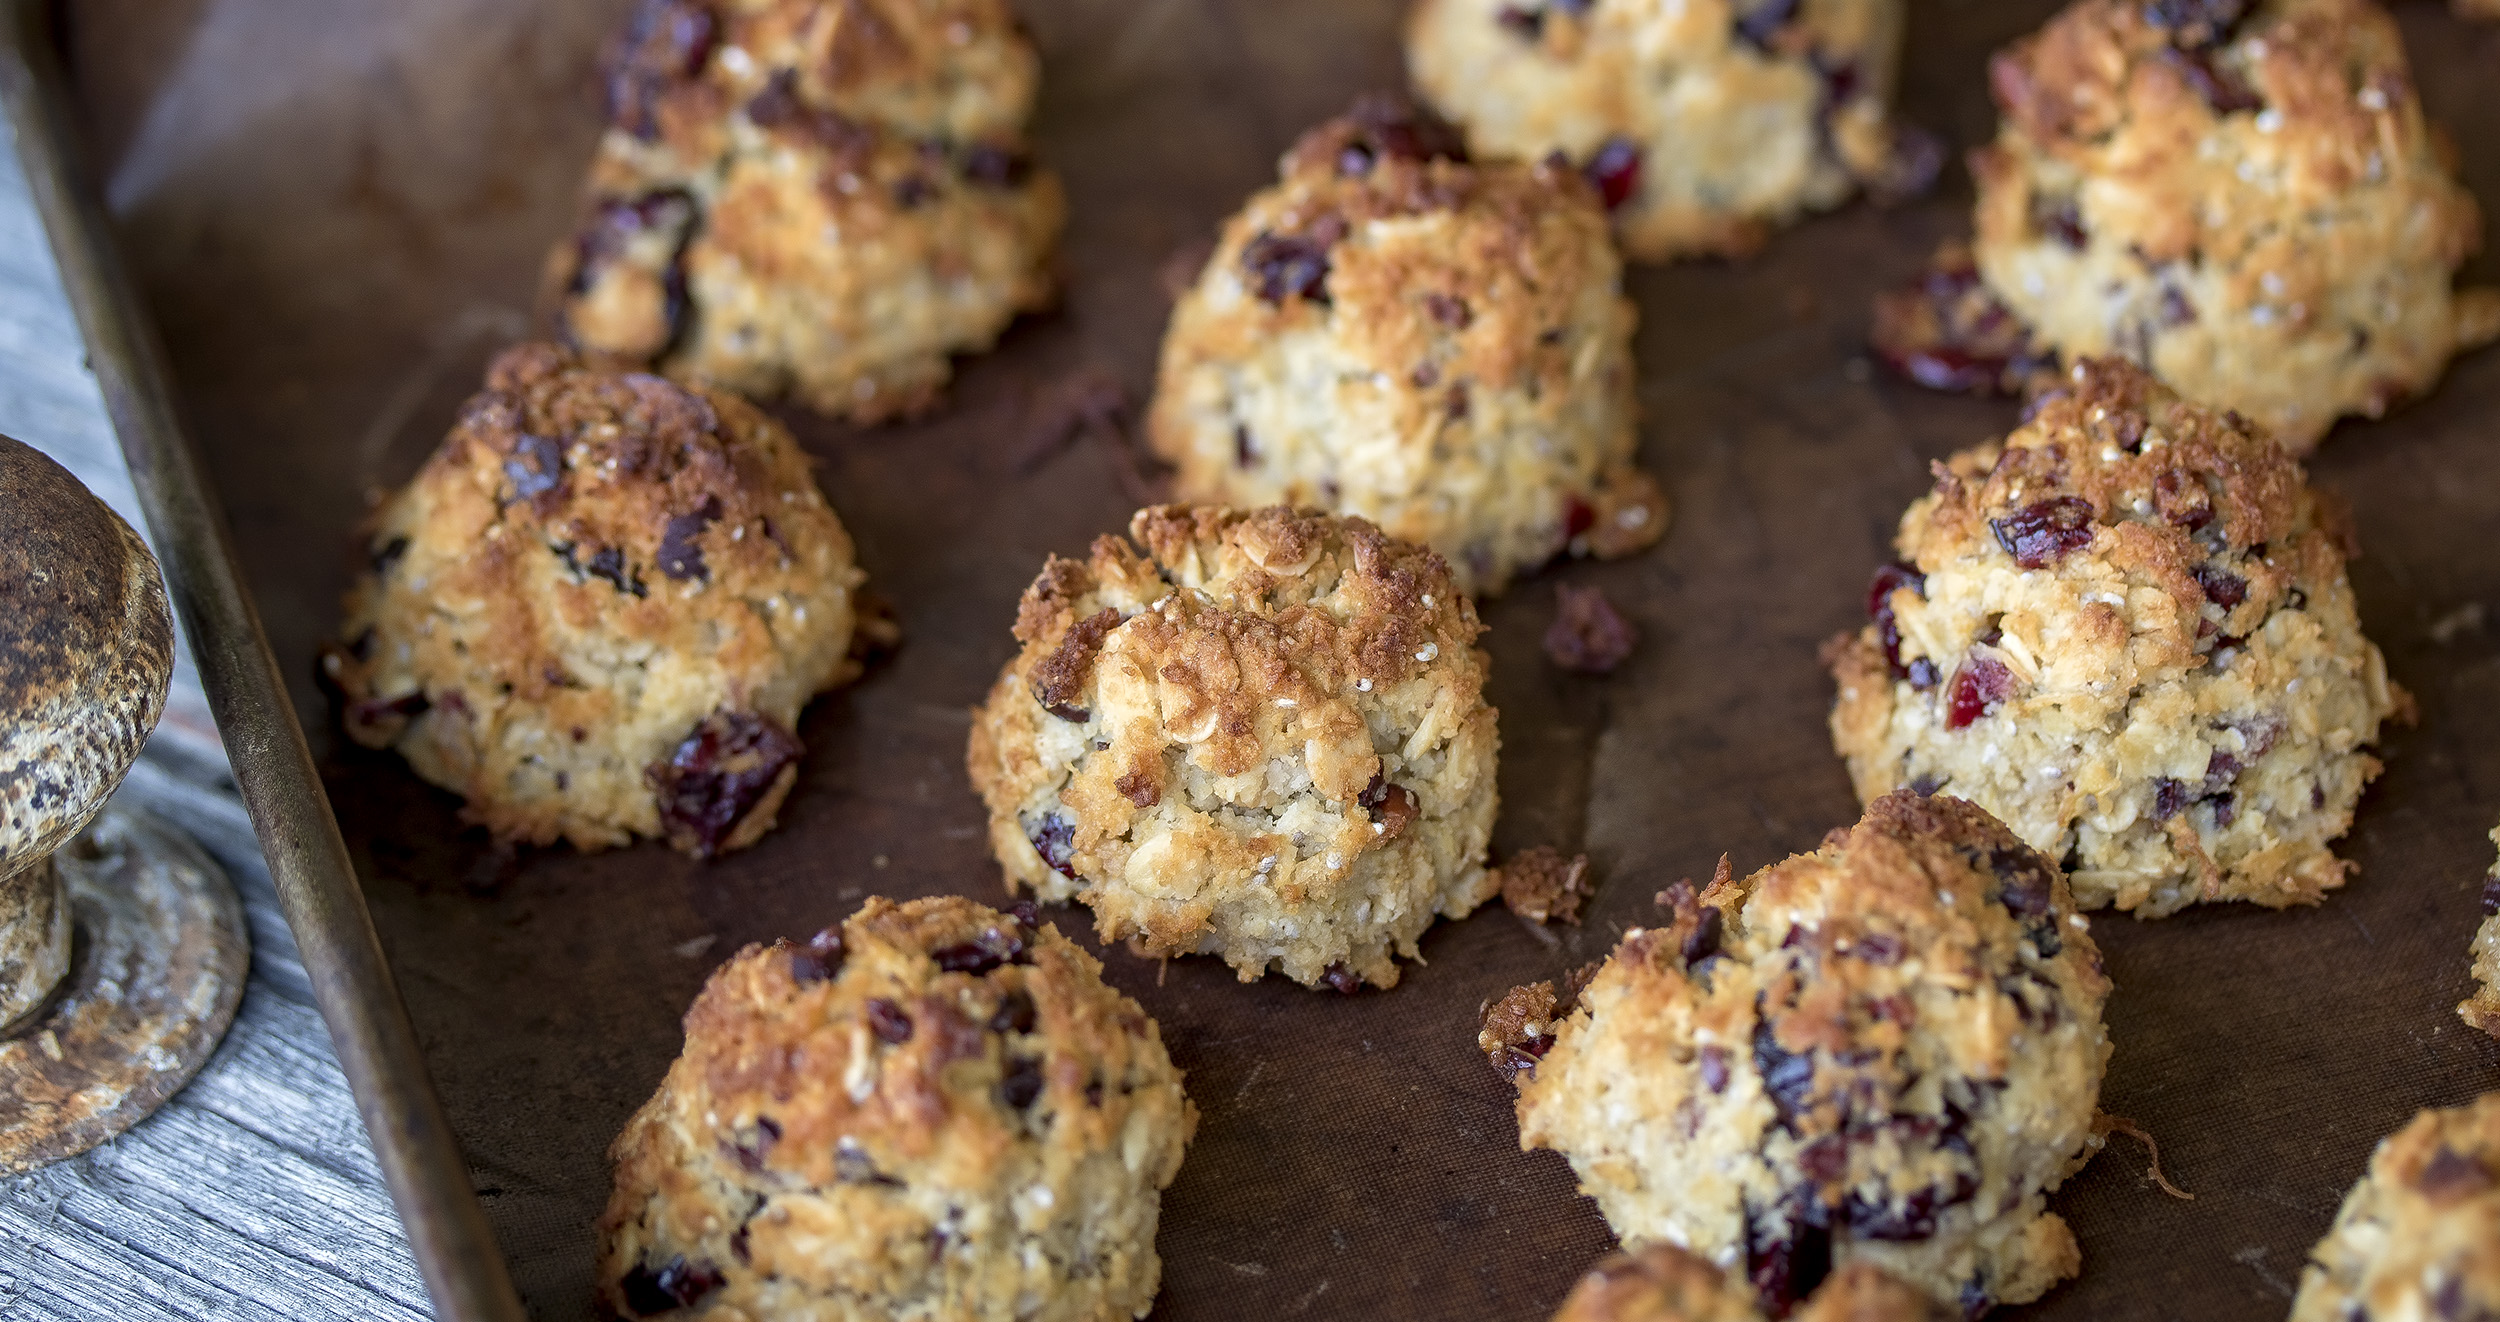 Pine, Cranberry, ChocChip Cookies